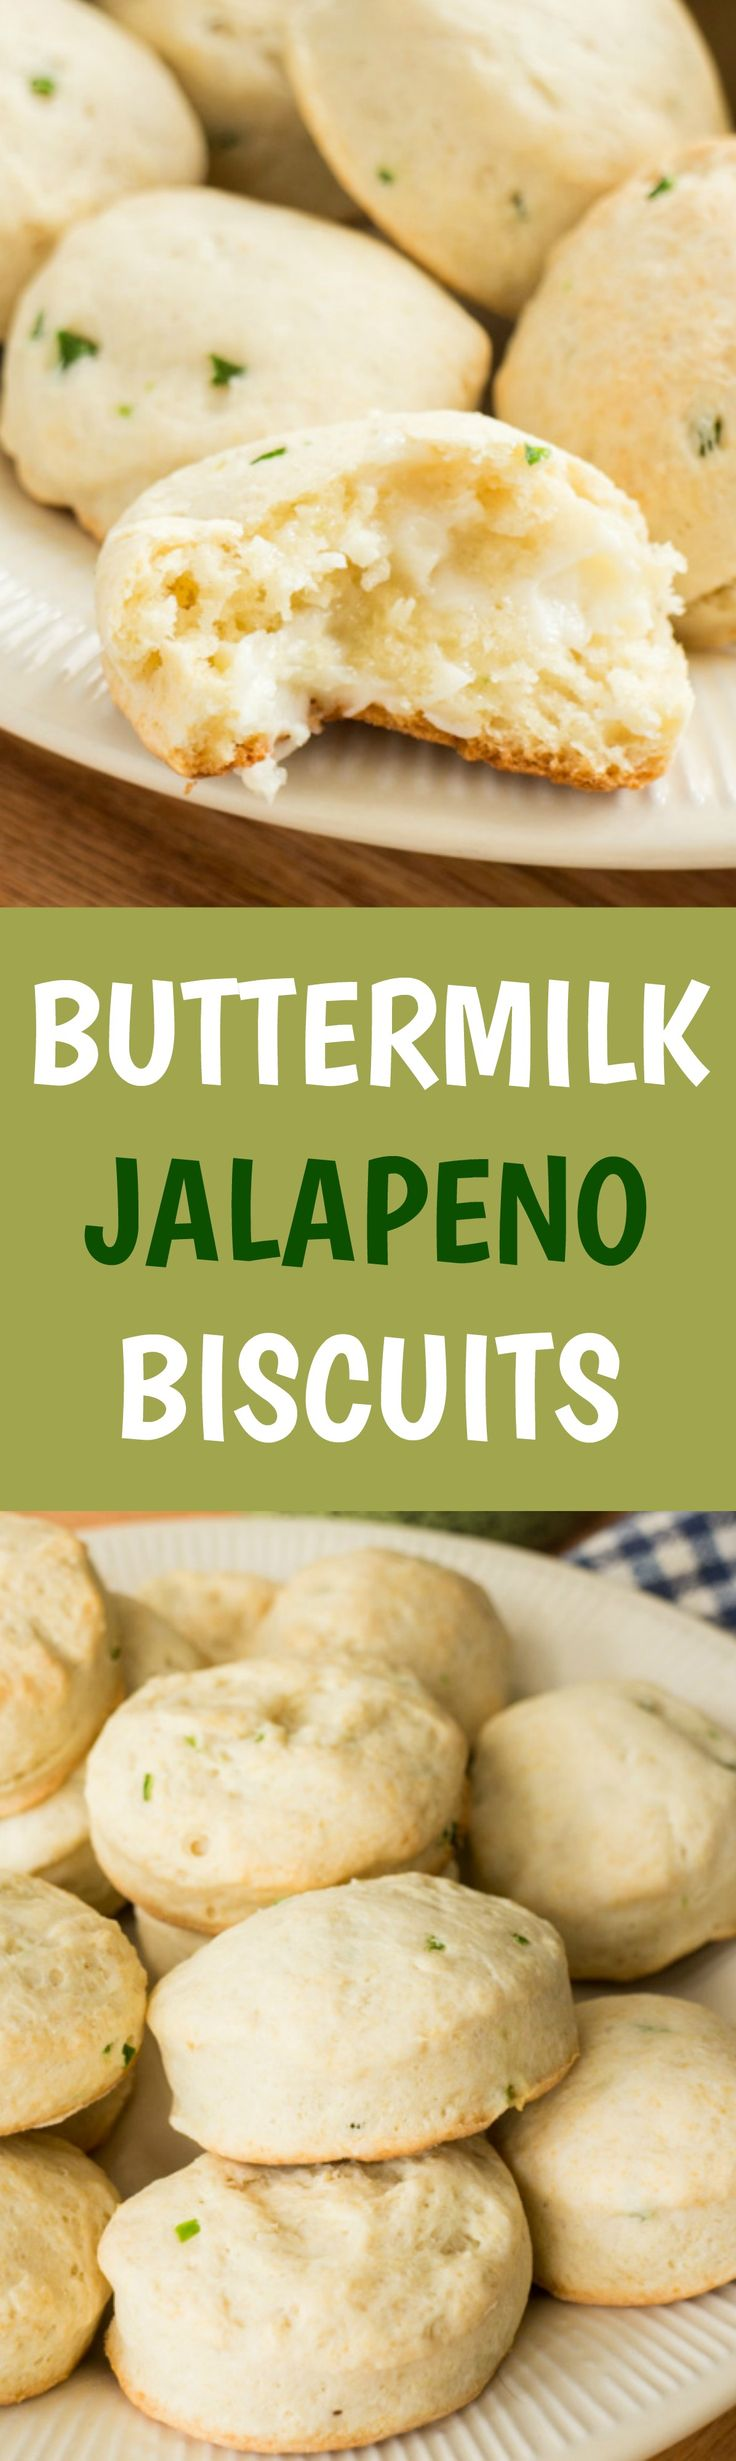 Step by step pictures on how to make the most Delicious Buttermilk Jalapeno Biscuits! These would be great for Thanksgiving dinner to serve!